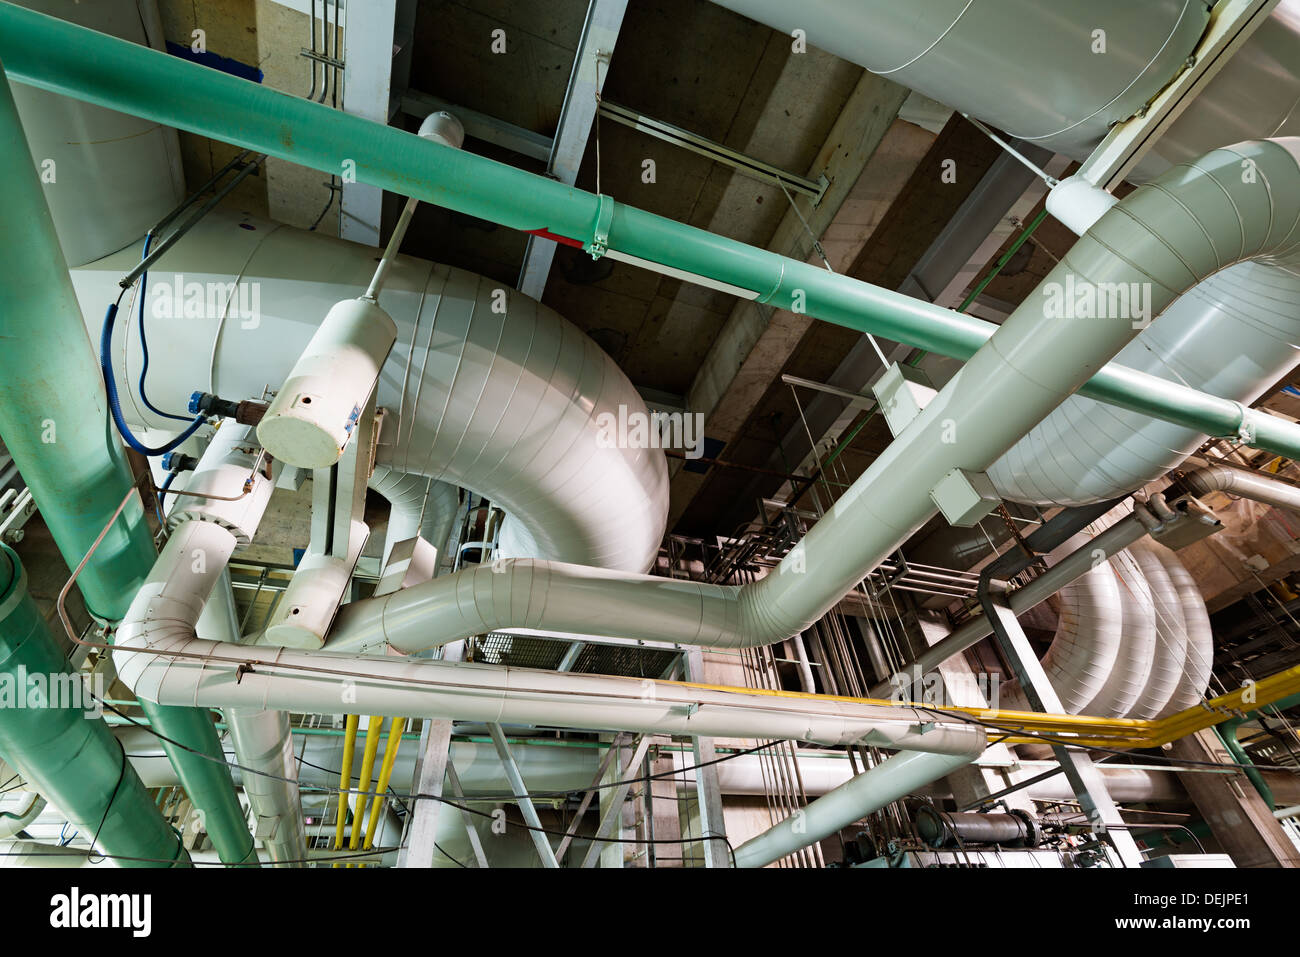 Equipment, cables and piping as found inside of industrial power plant Stock Photo